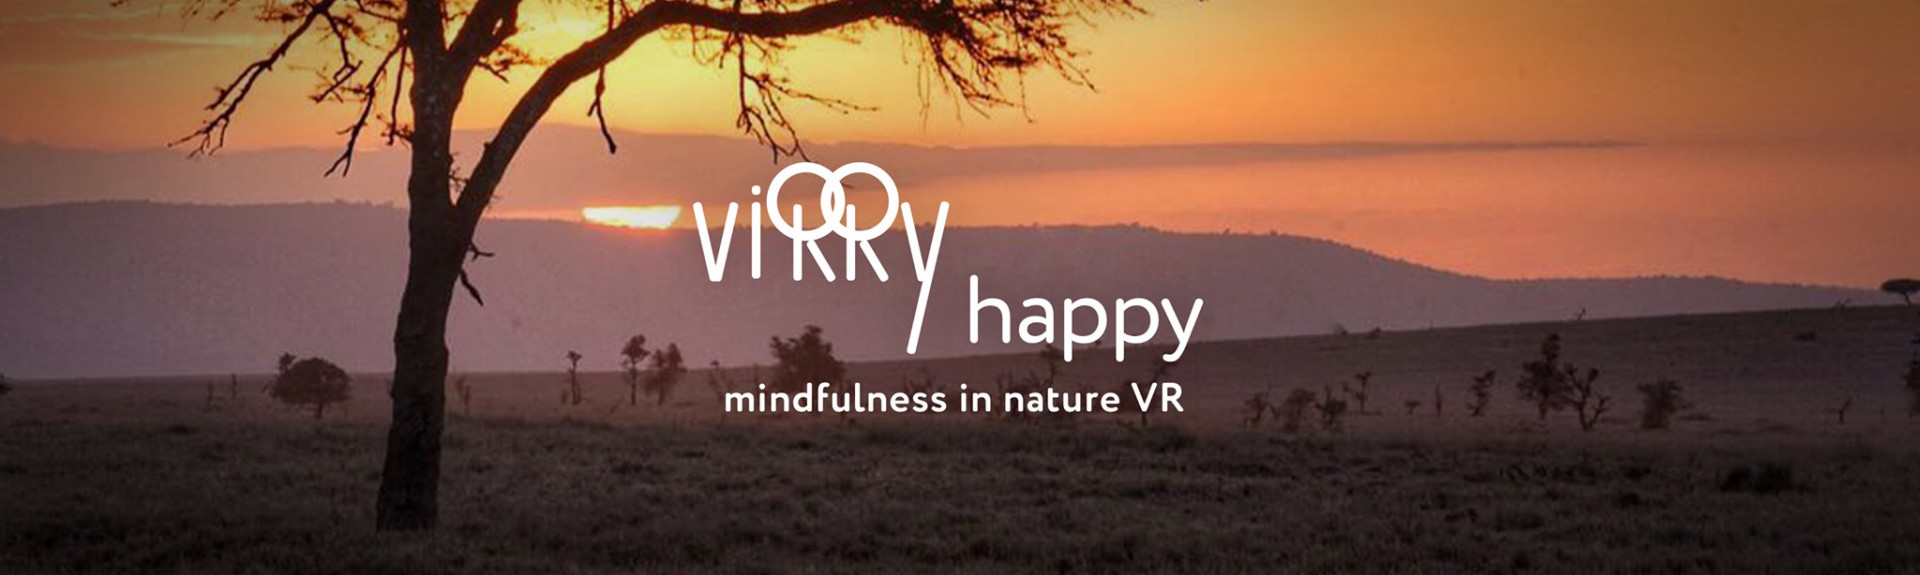 Virry Happy: mindfulness in nature VR